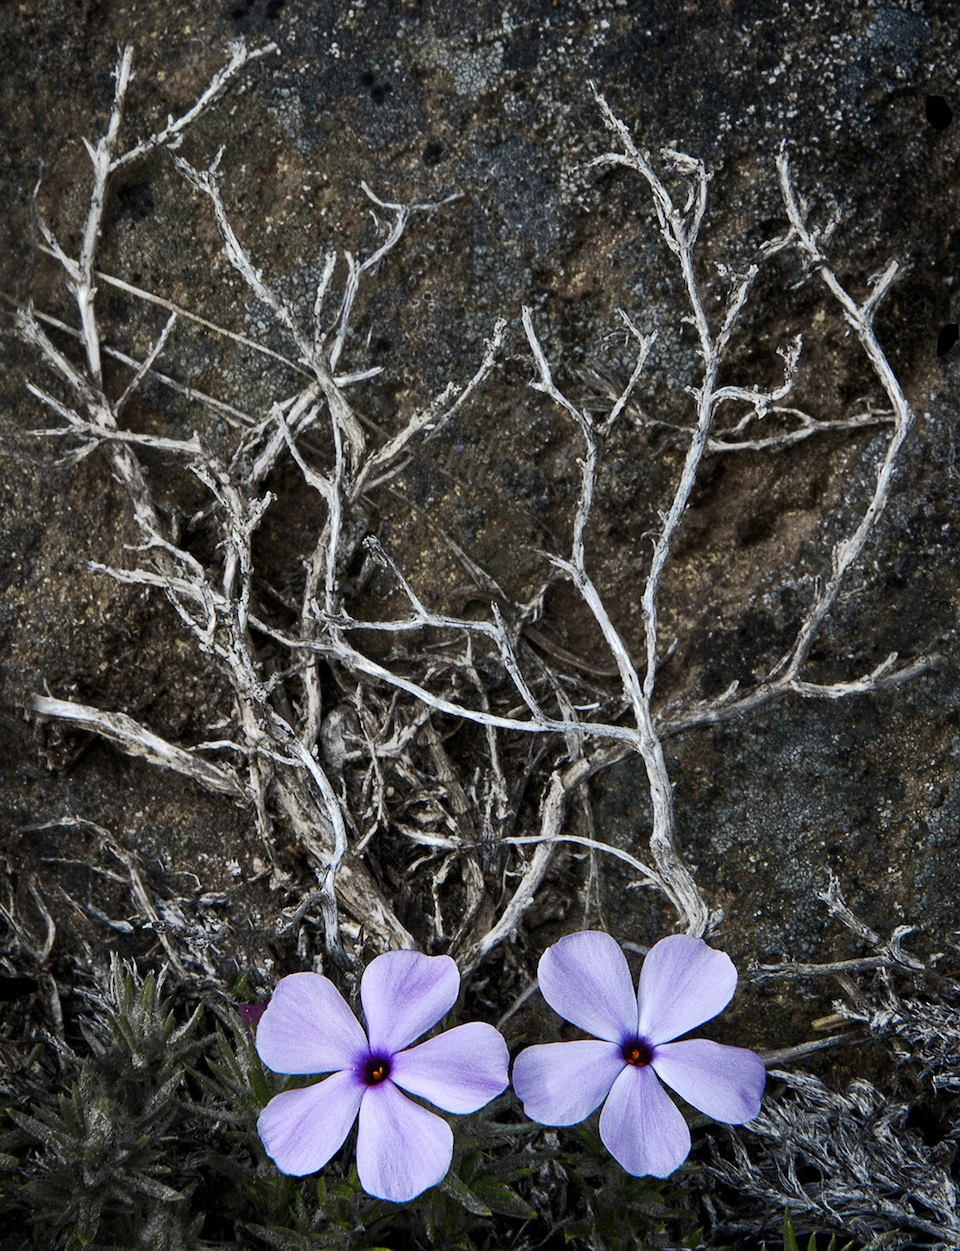 Phlox and dried wood © 2016 Matt Witt